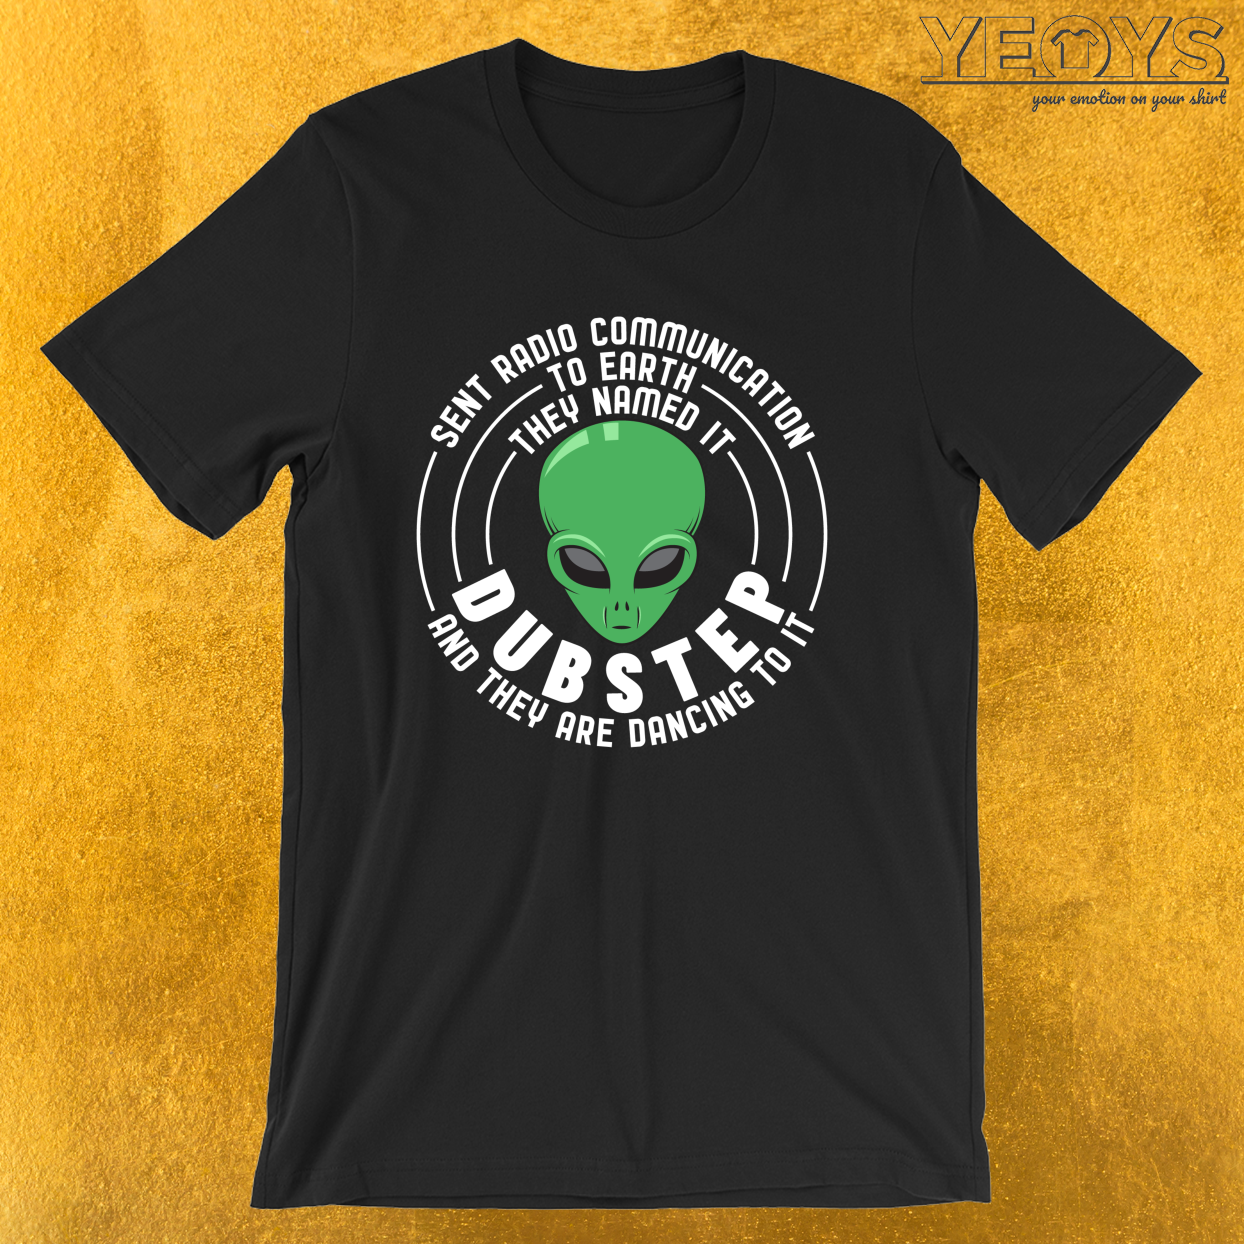 Sent Radio Communication To Earth They Named It Dubstep And They Are Dancing To It – Dubstep Quotes Tee